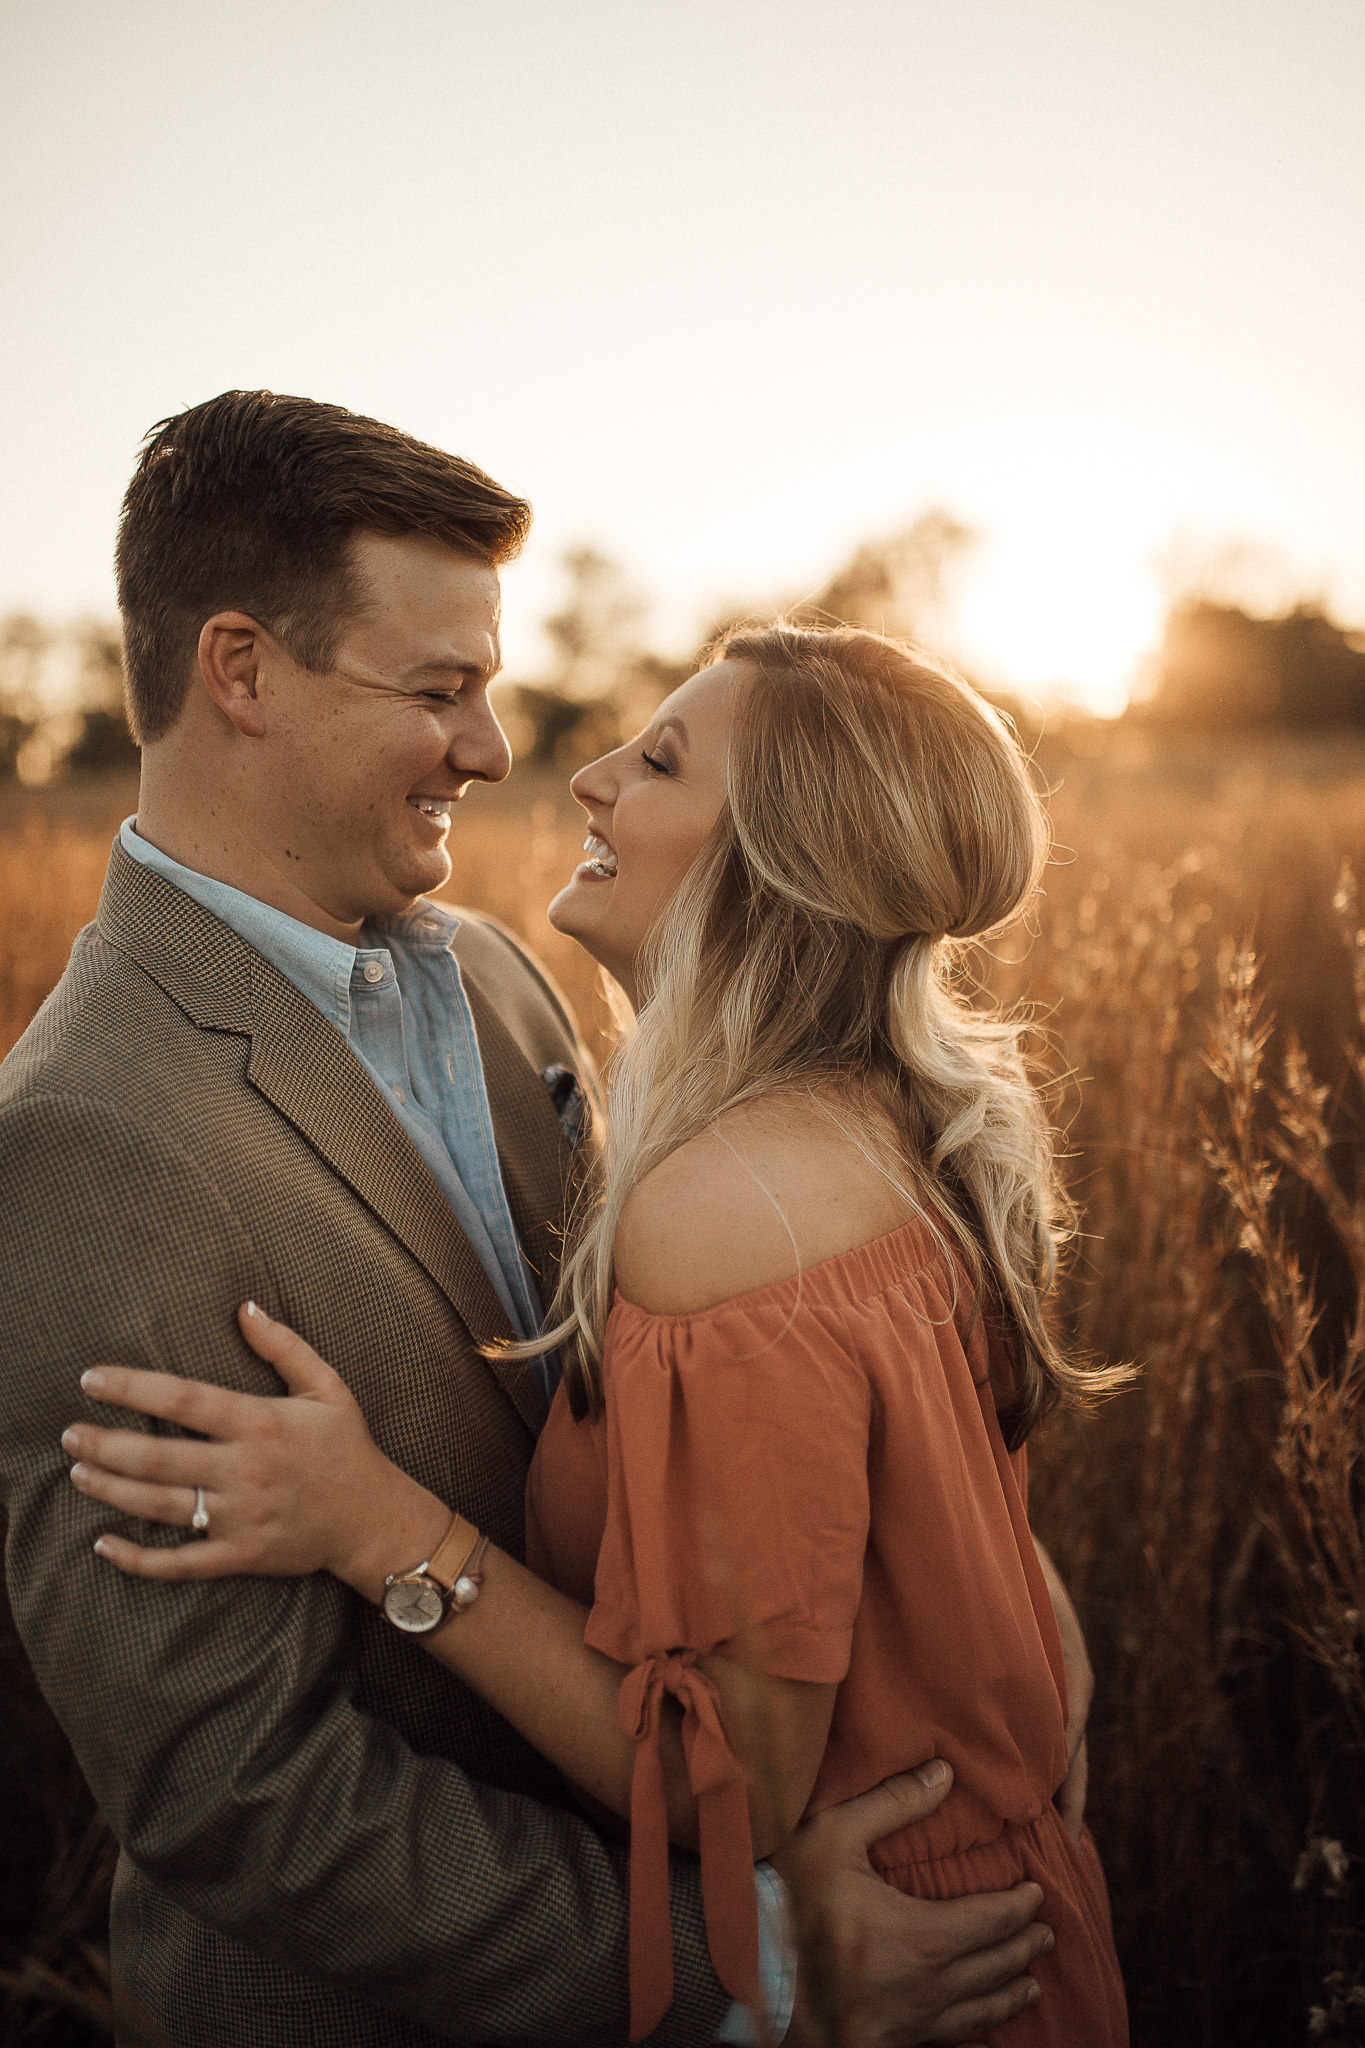 memphis-wedding-photographers-the-warmth-around-you-cassie-cook-photography-7.jpg